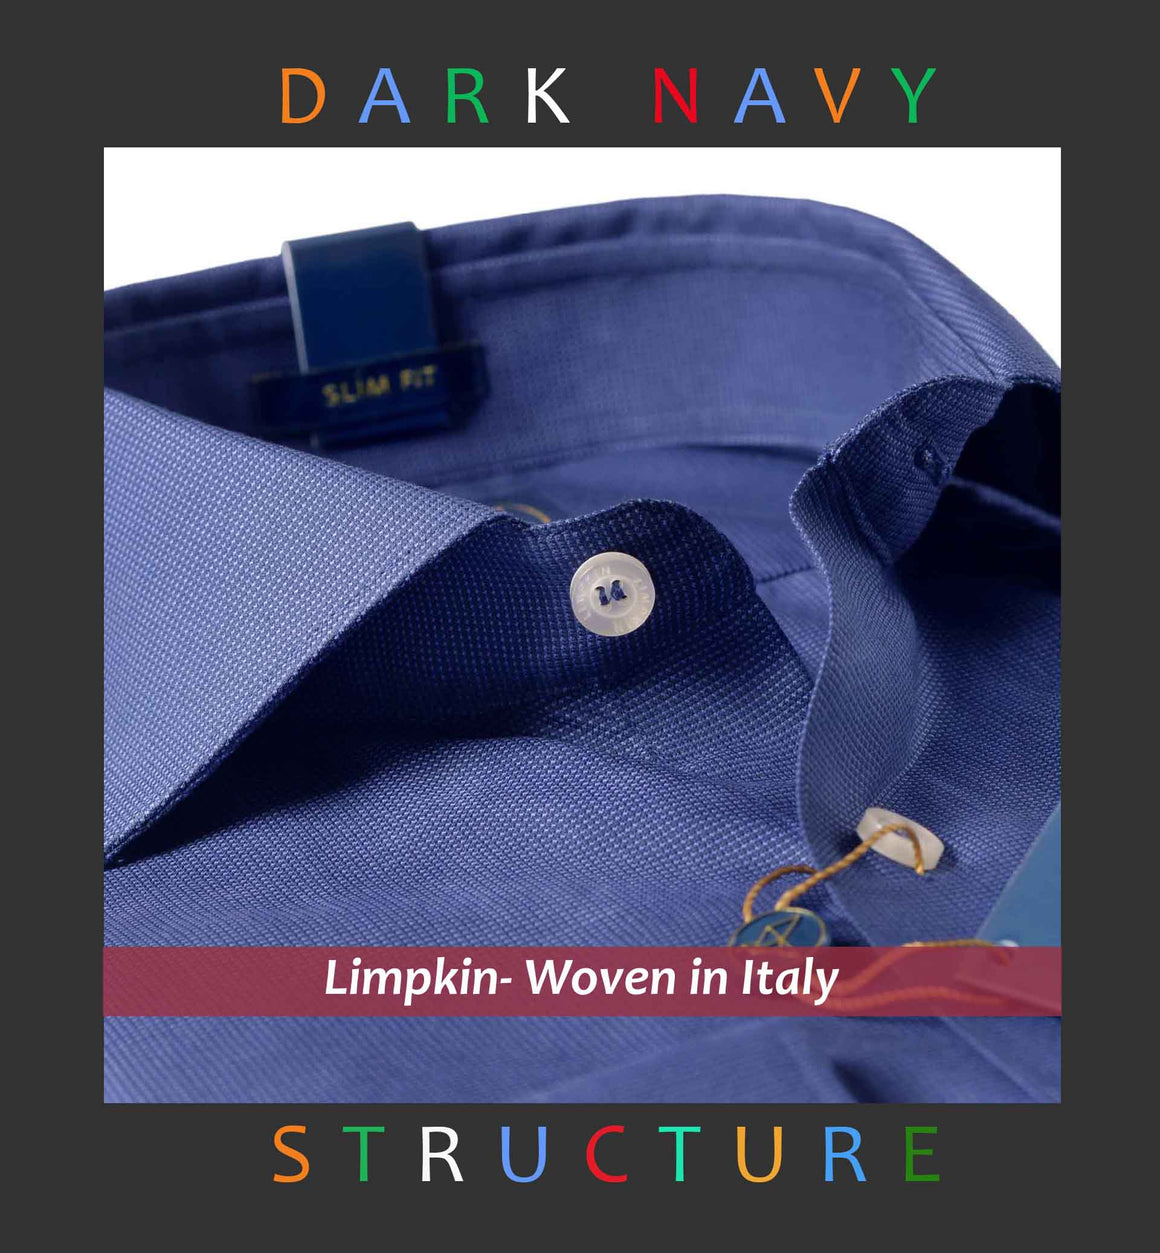 BRISTOL- DARK NAVY SOLID STRUCTURE